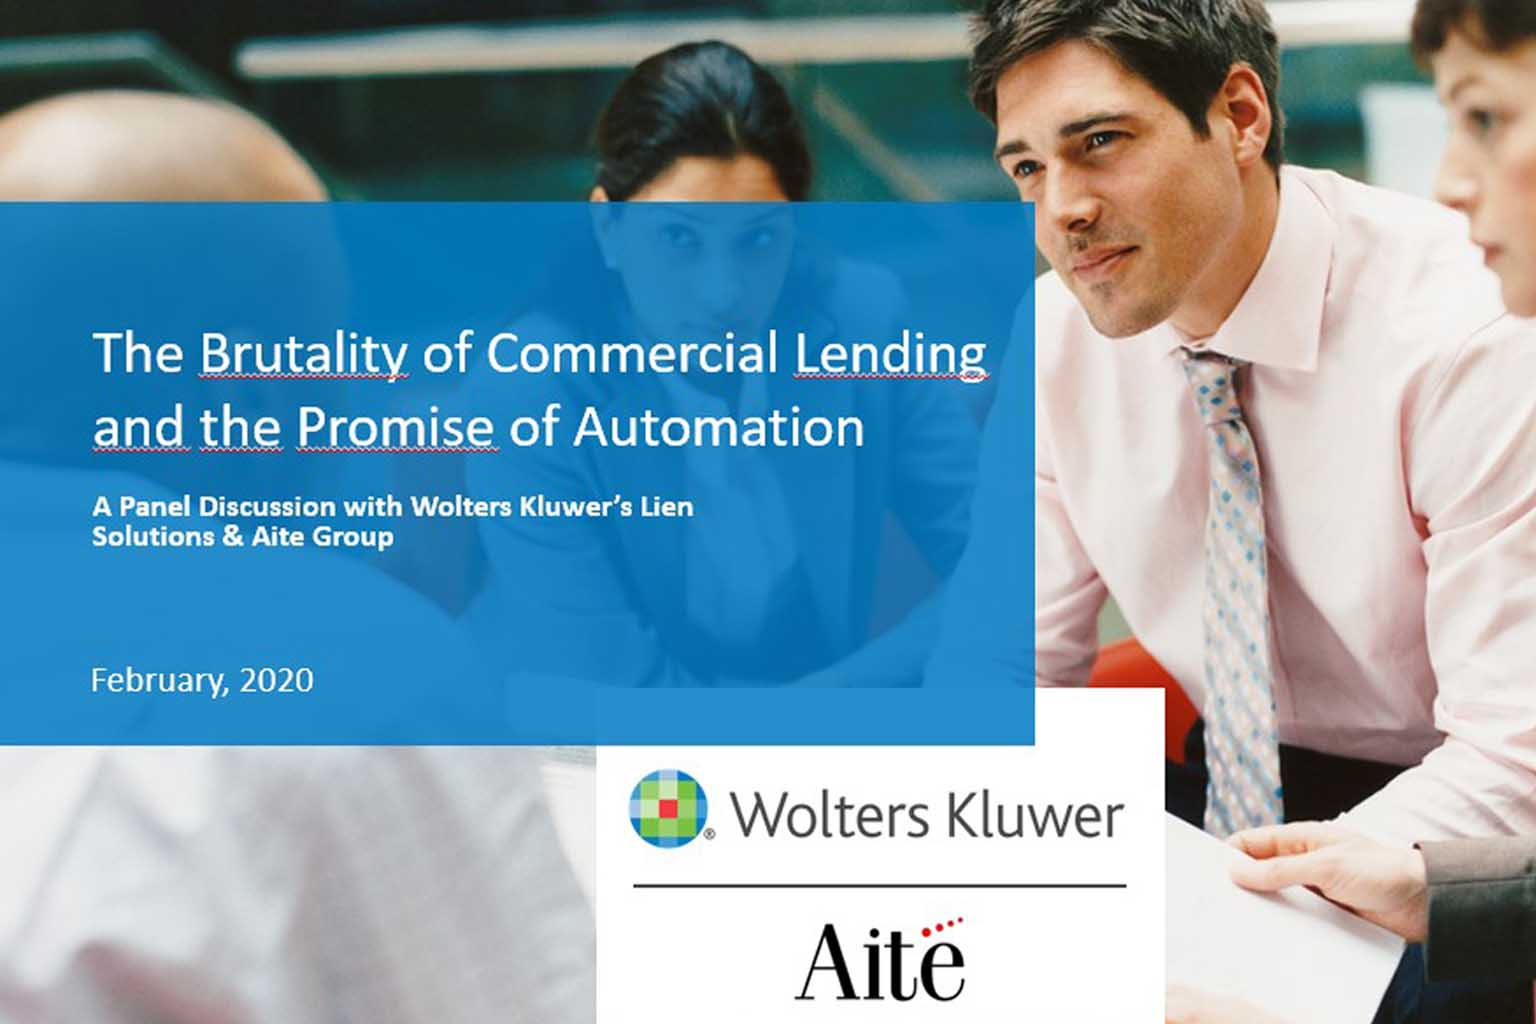 webinar  title card image for The Brutality of Commercial Lending and the Promise of Automation